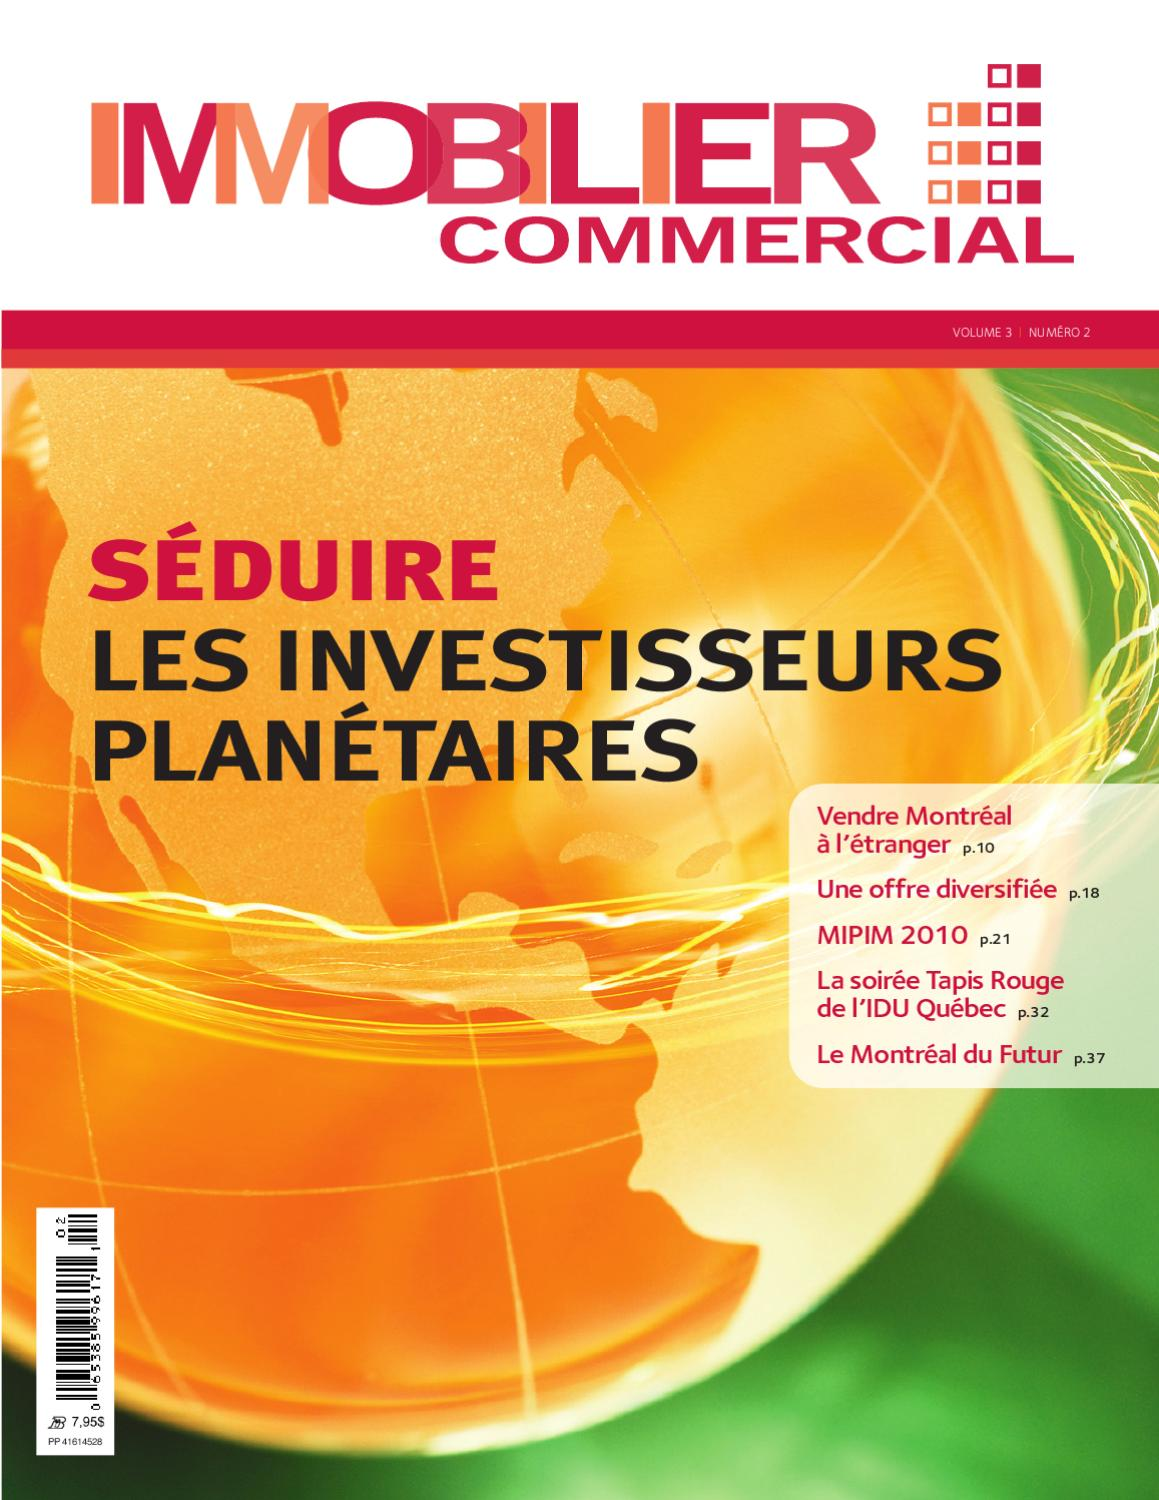 Magazine Immobilier Commercial Vol 3 No 2 By Jbc Media Inc Issuu